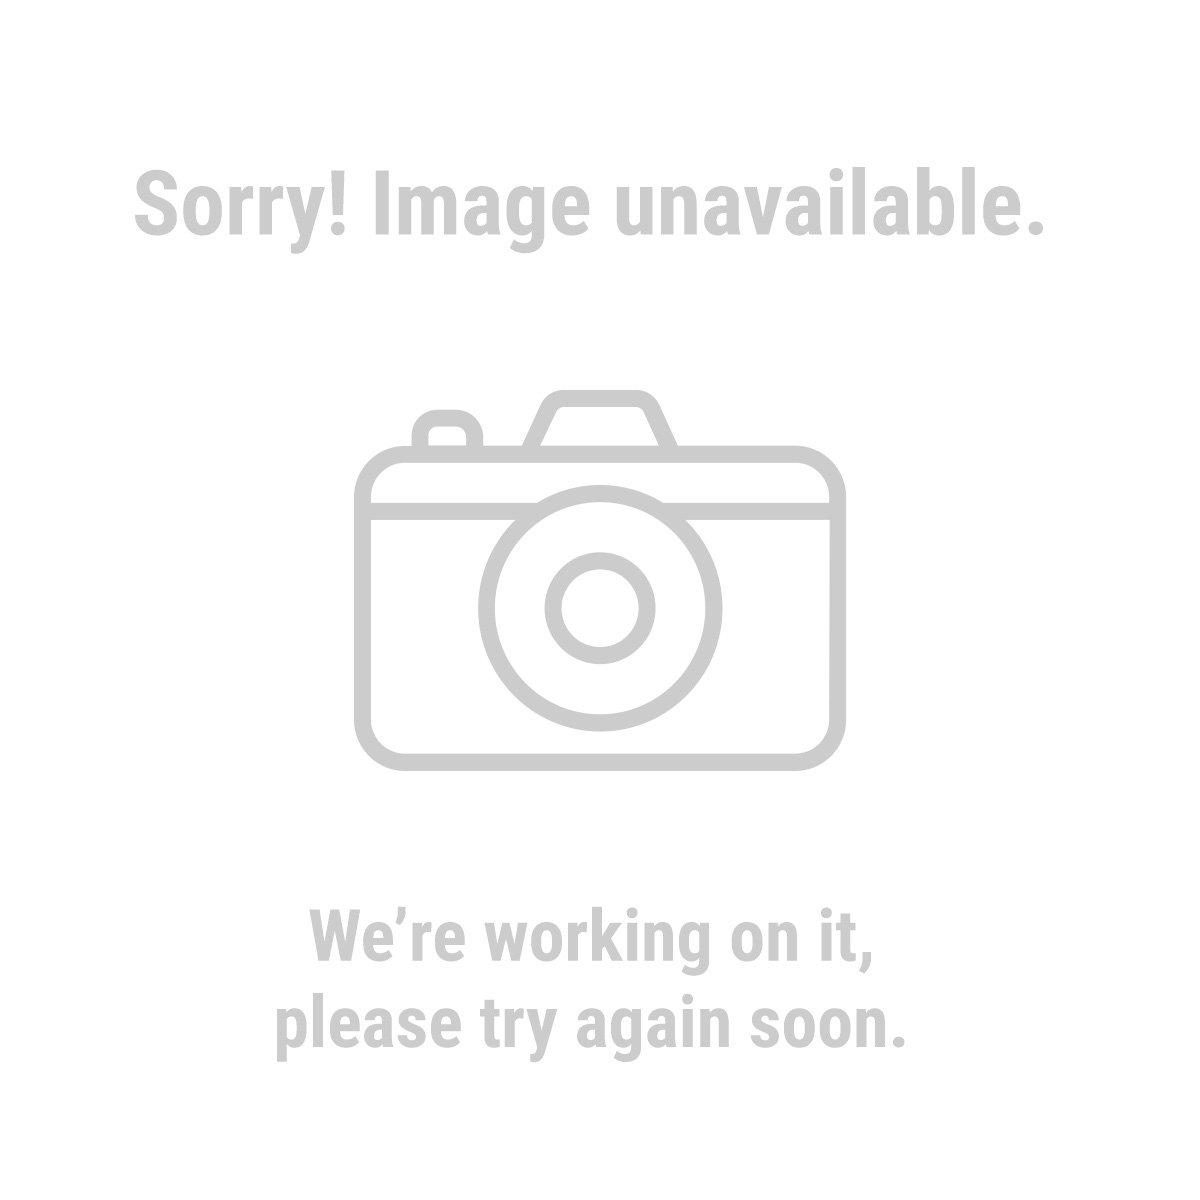 Pittsburgh 62112 24 in. Ratchet Bar Clamp/Spreader